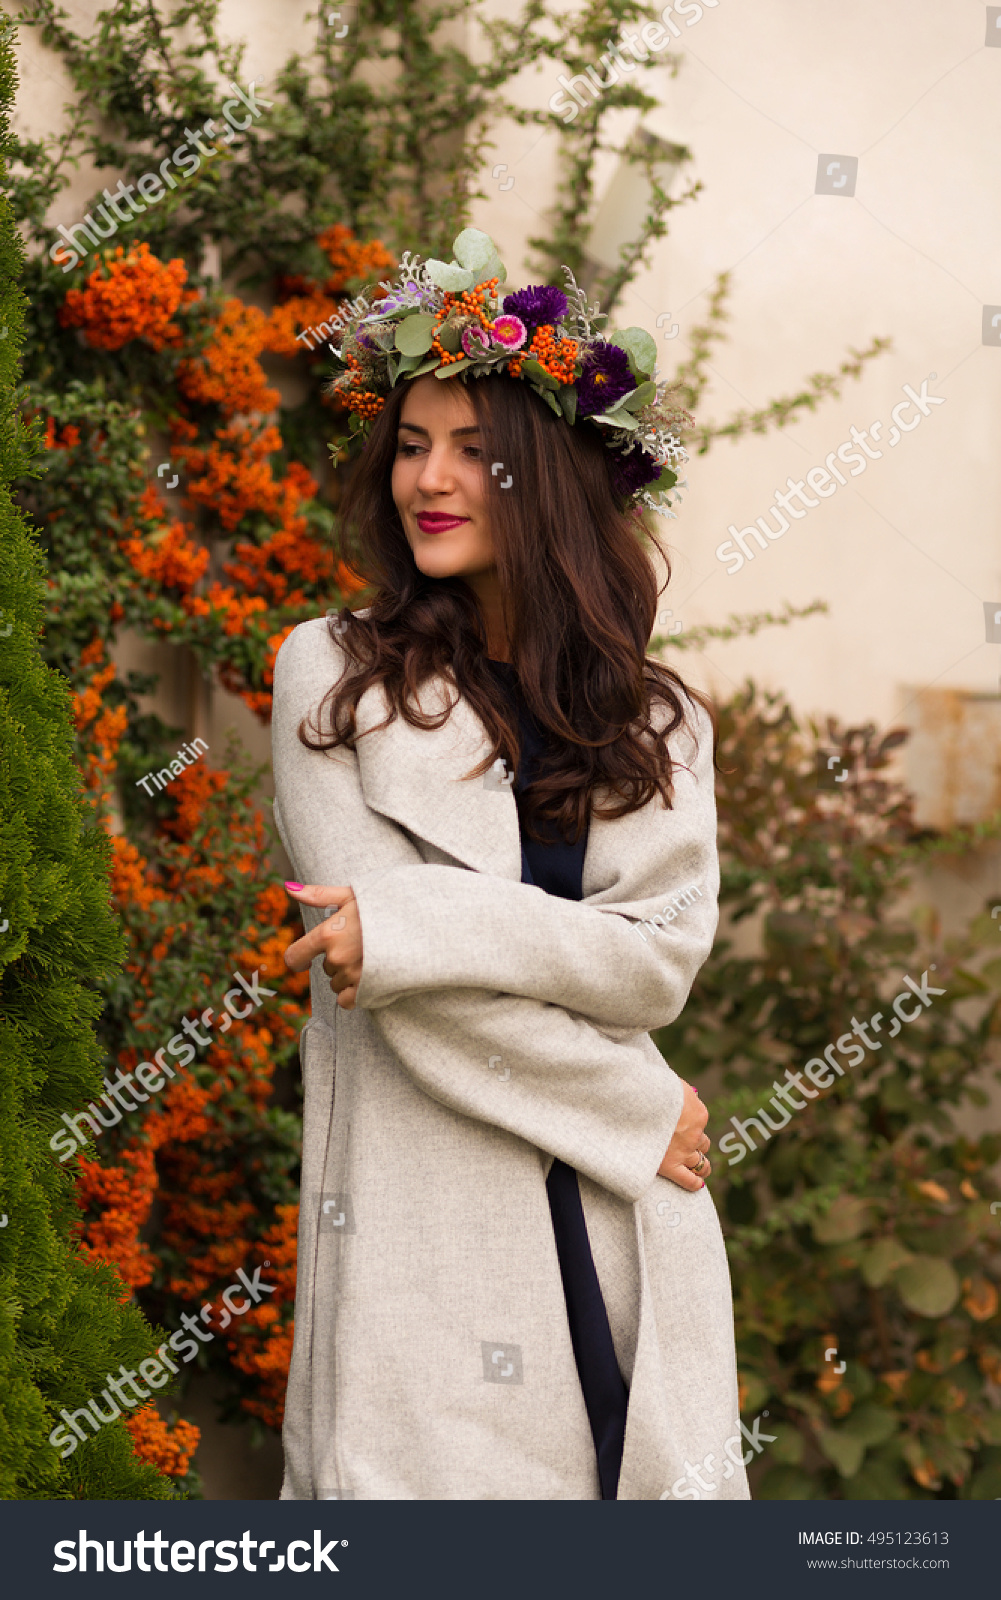 Pretty Woman Flower Crown Autumn Garden Stock Photo Edit Now